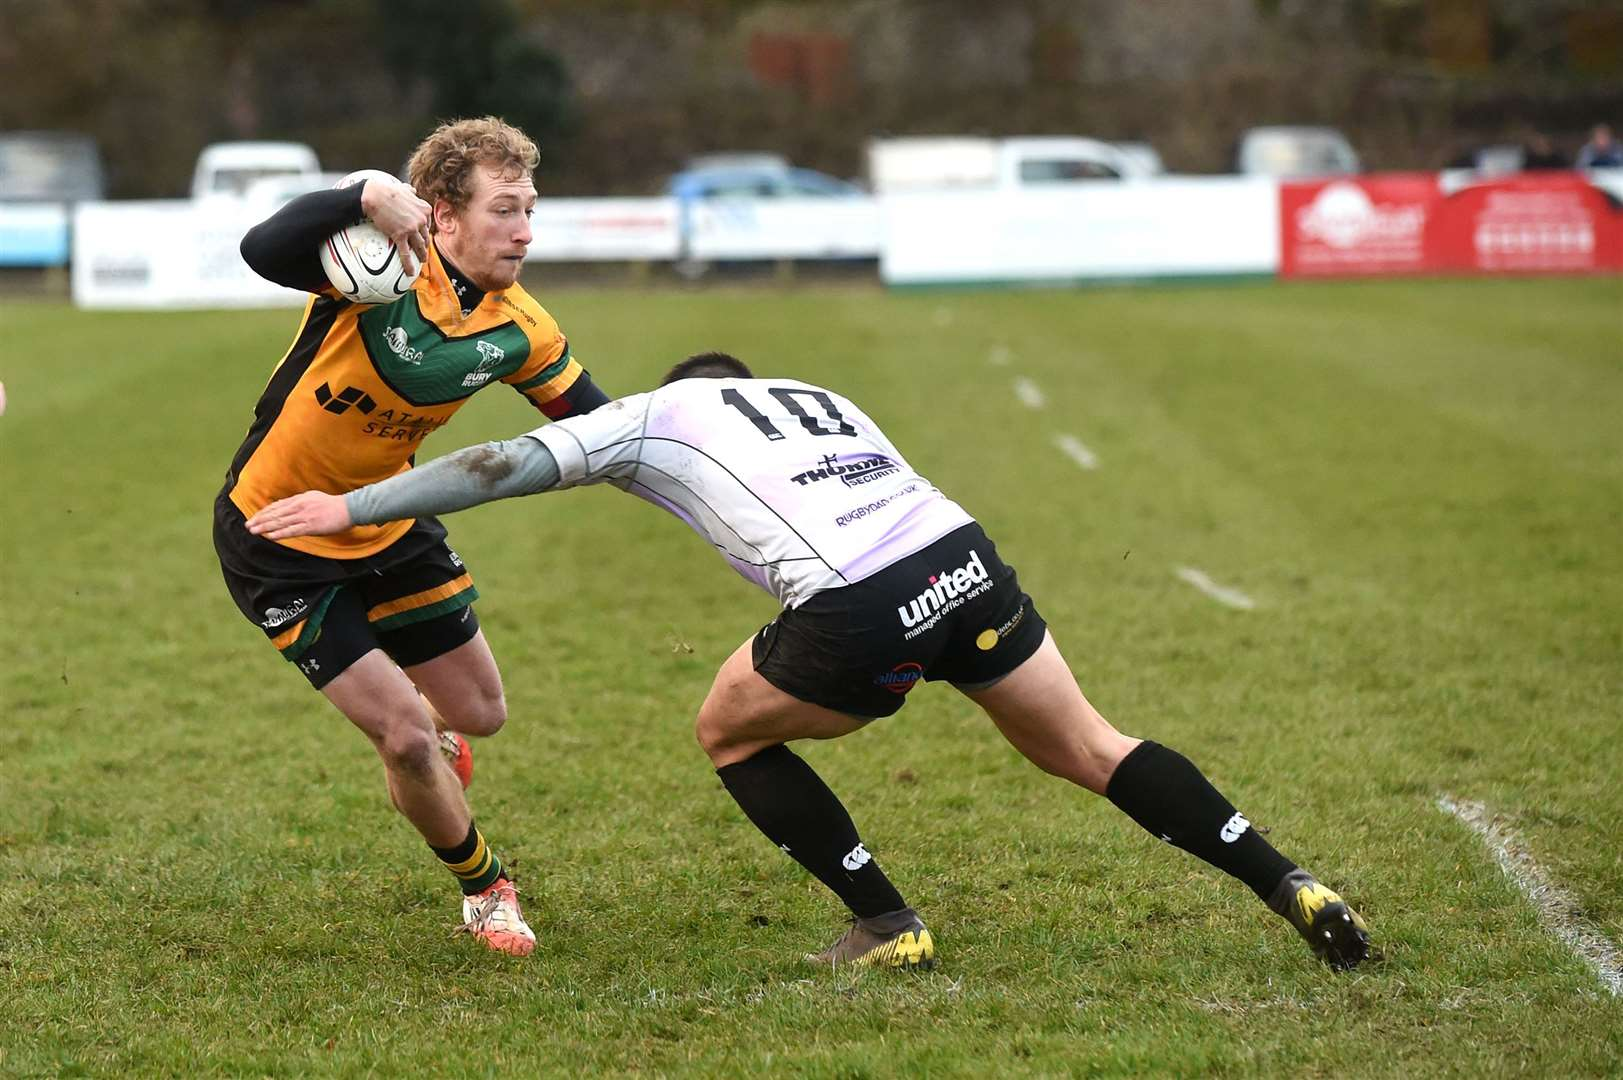 RUGBY - Bury St Edmunds v Clifton..Pictured: Sebastiano Dusi...PICTURE: Mecha Morton .... (25914352)